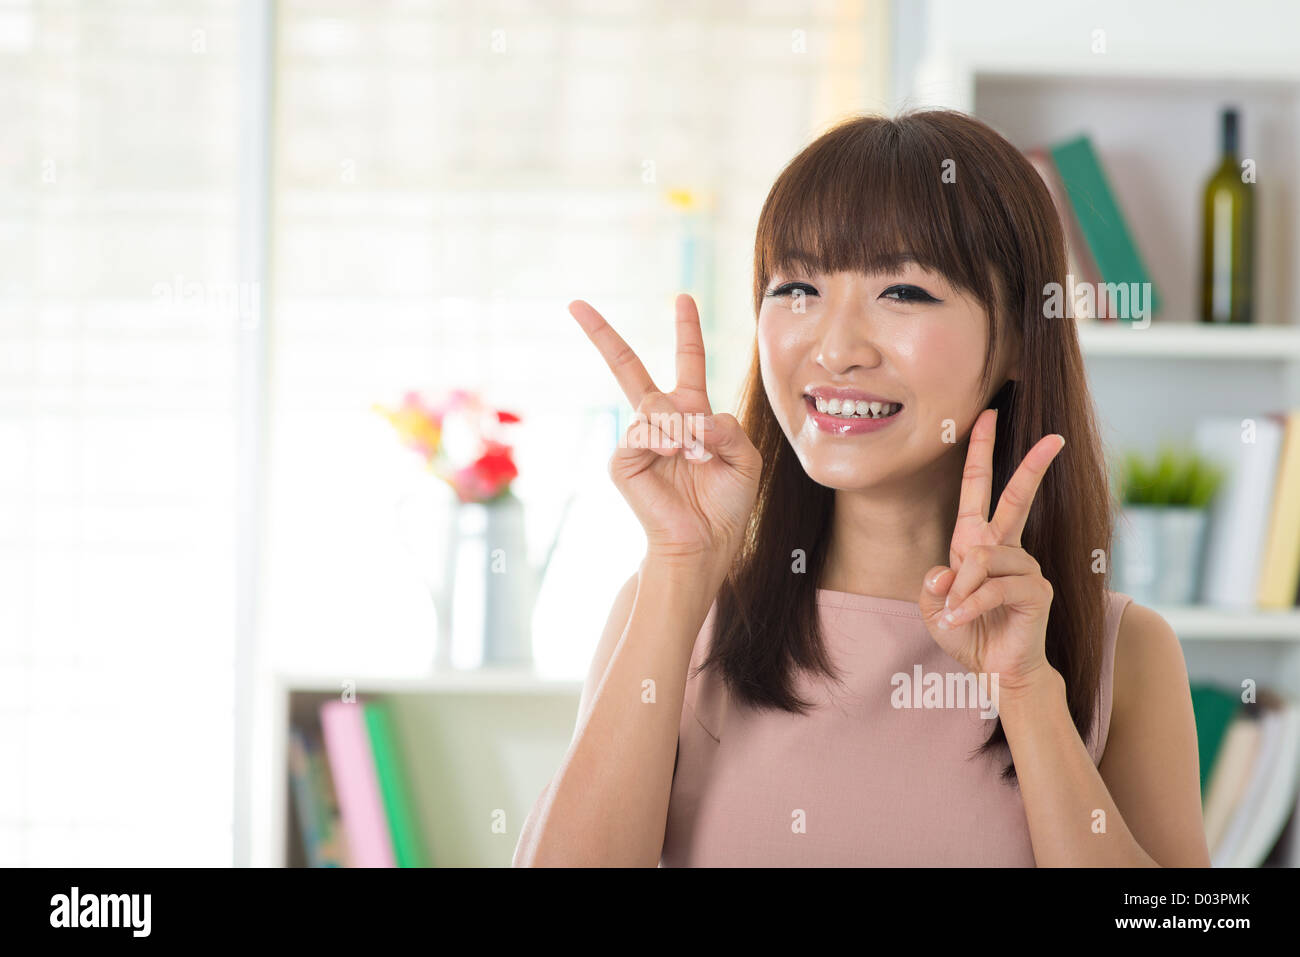 Asian peace sign photos Why